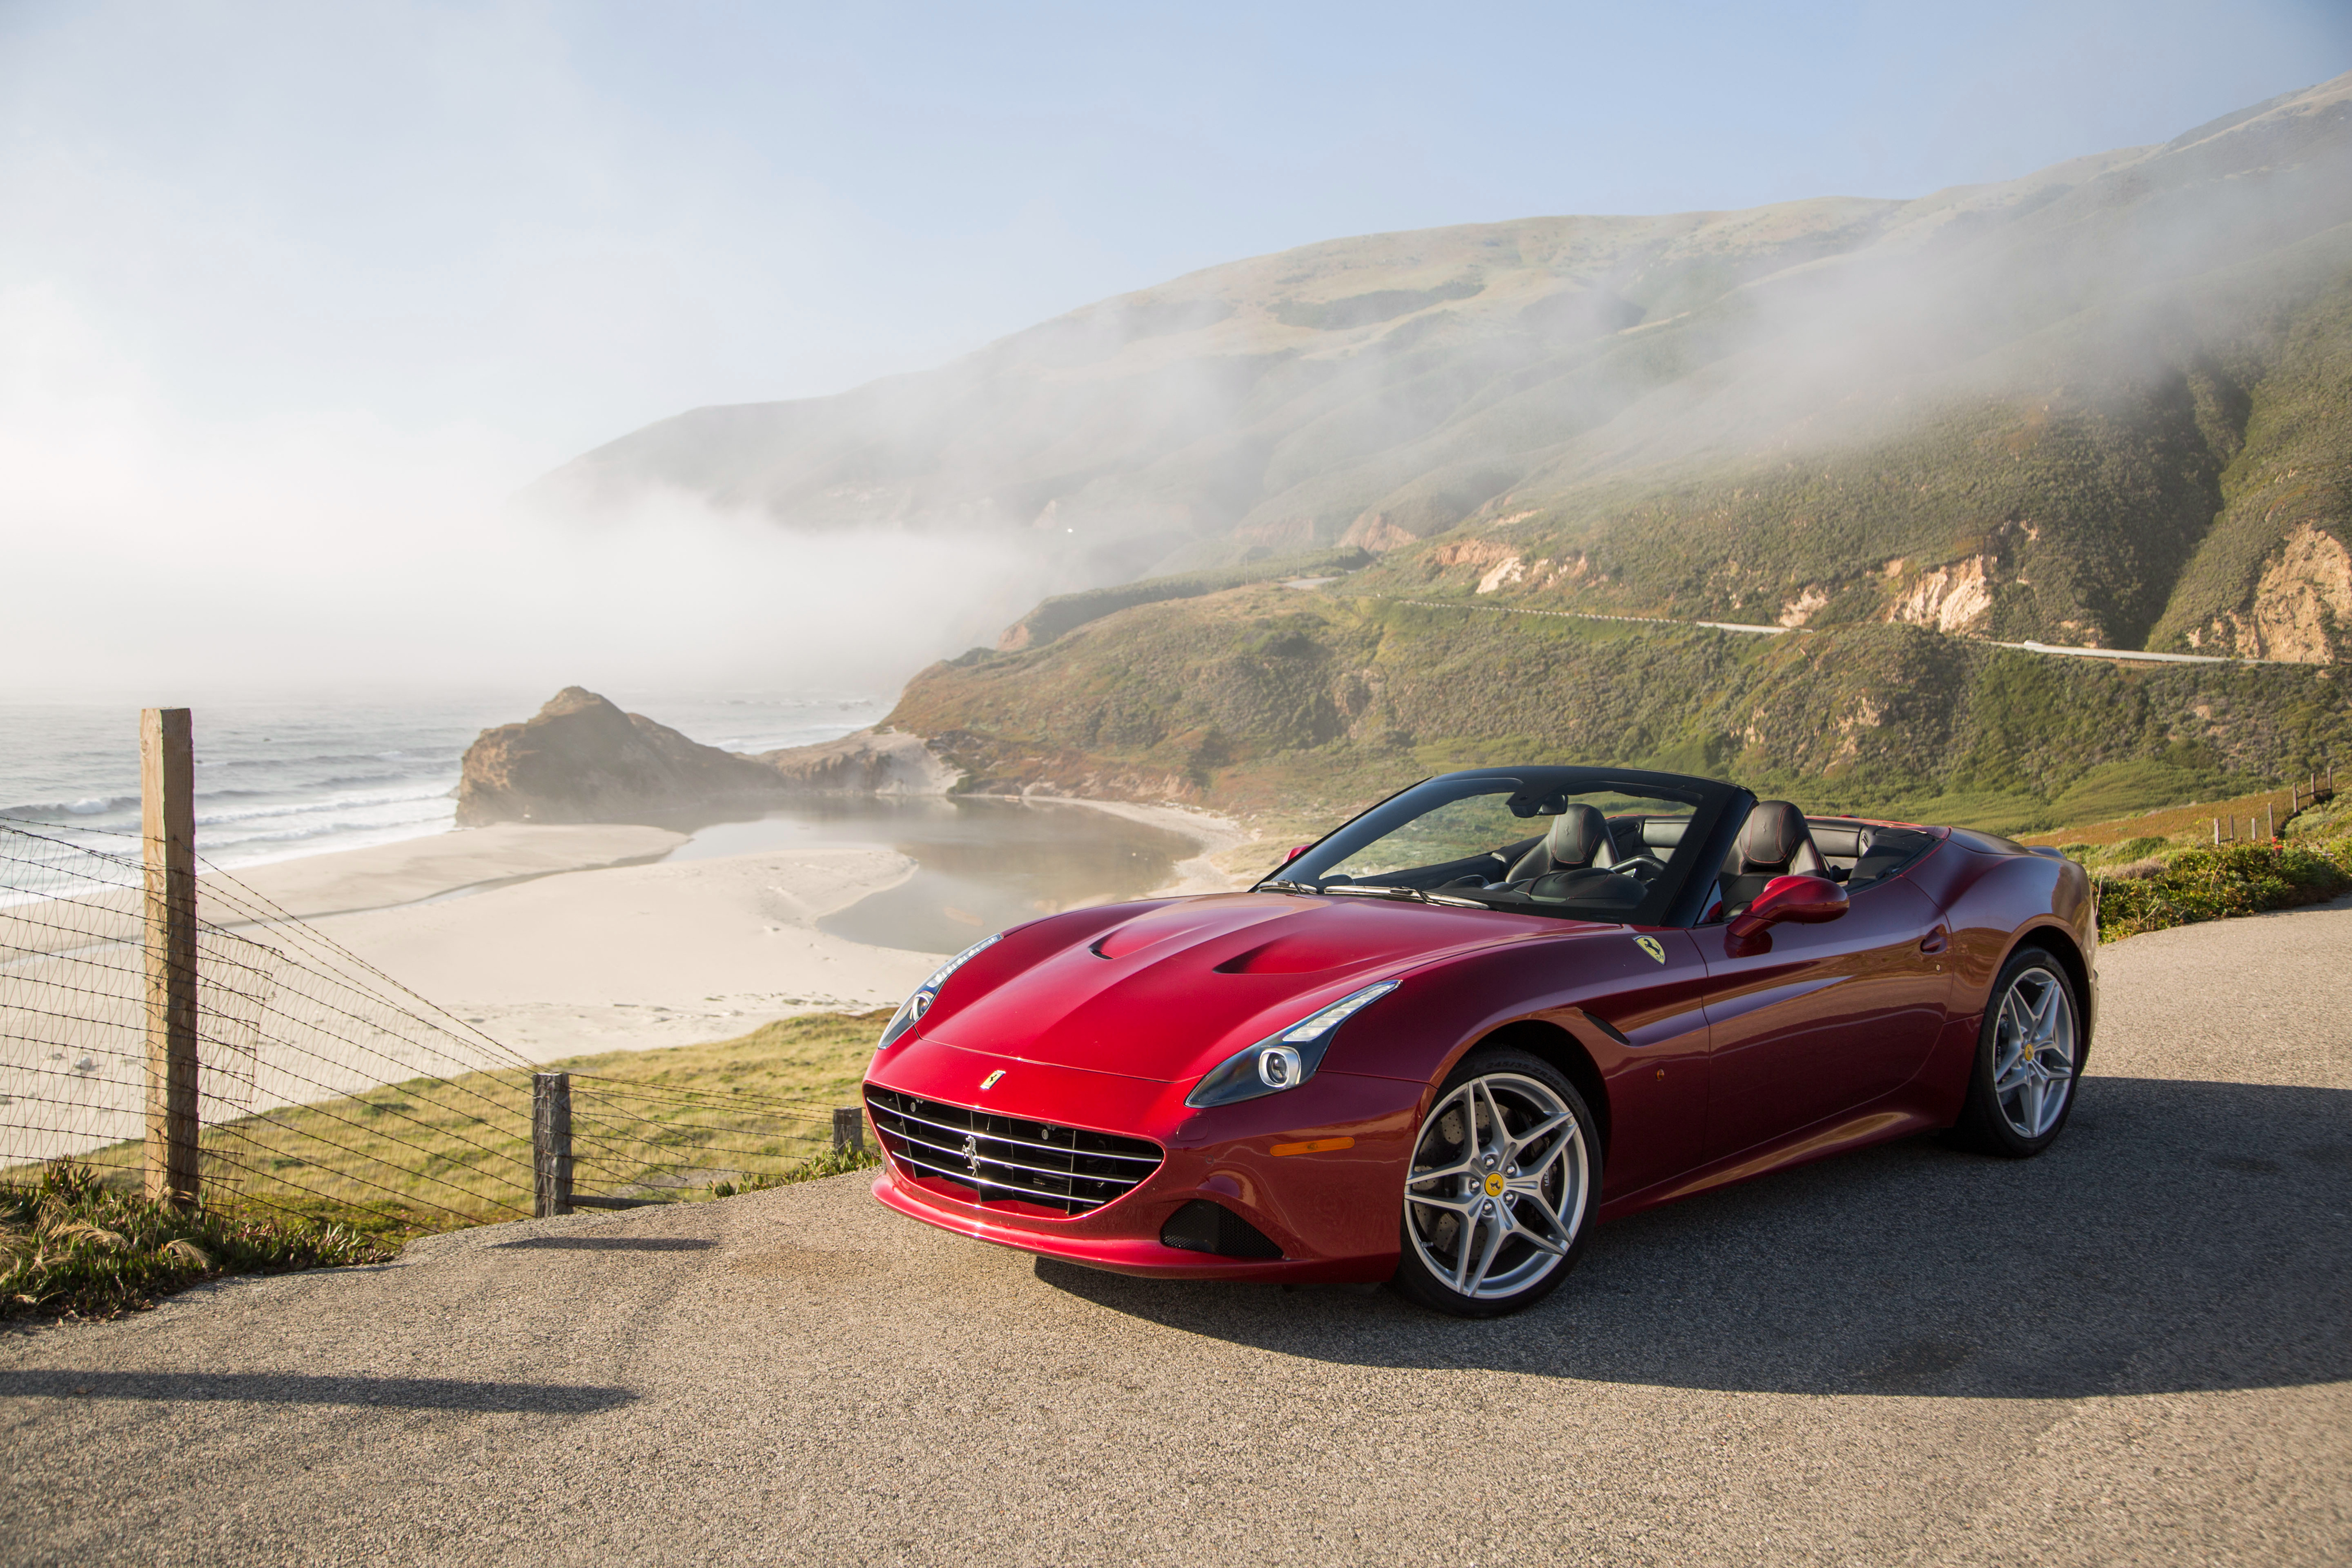 Ferrari California Wallpapers, Pictures, Images